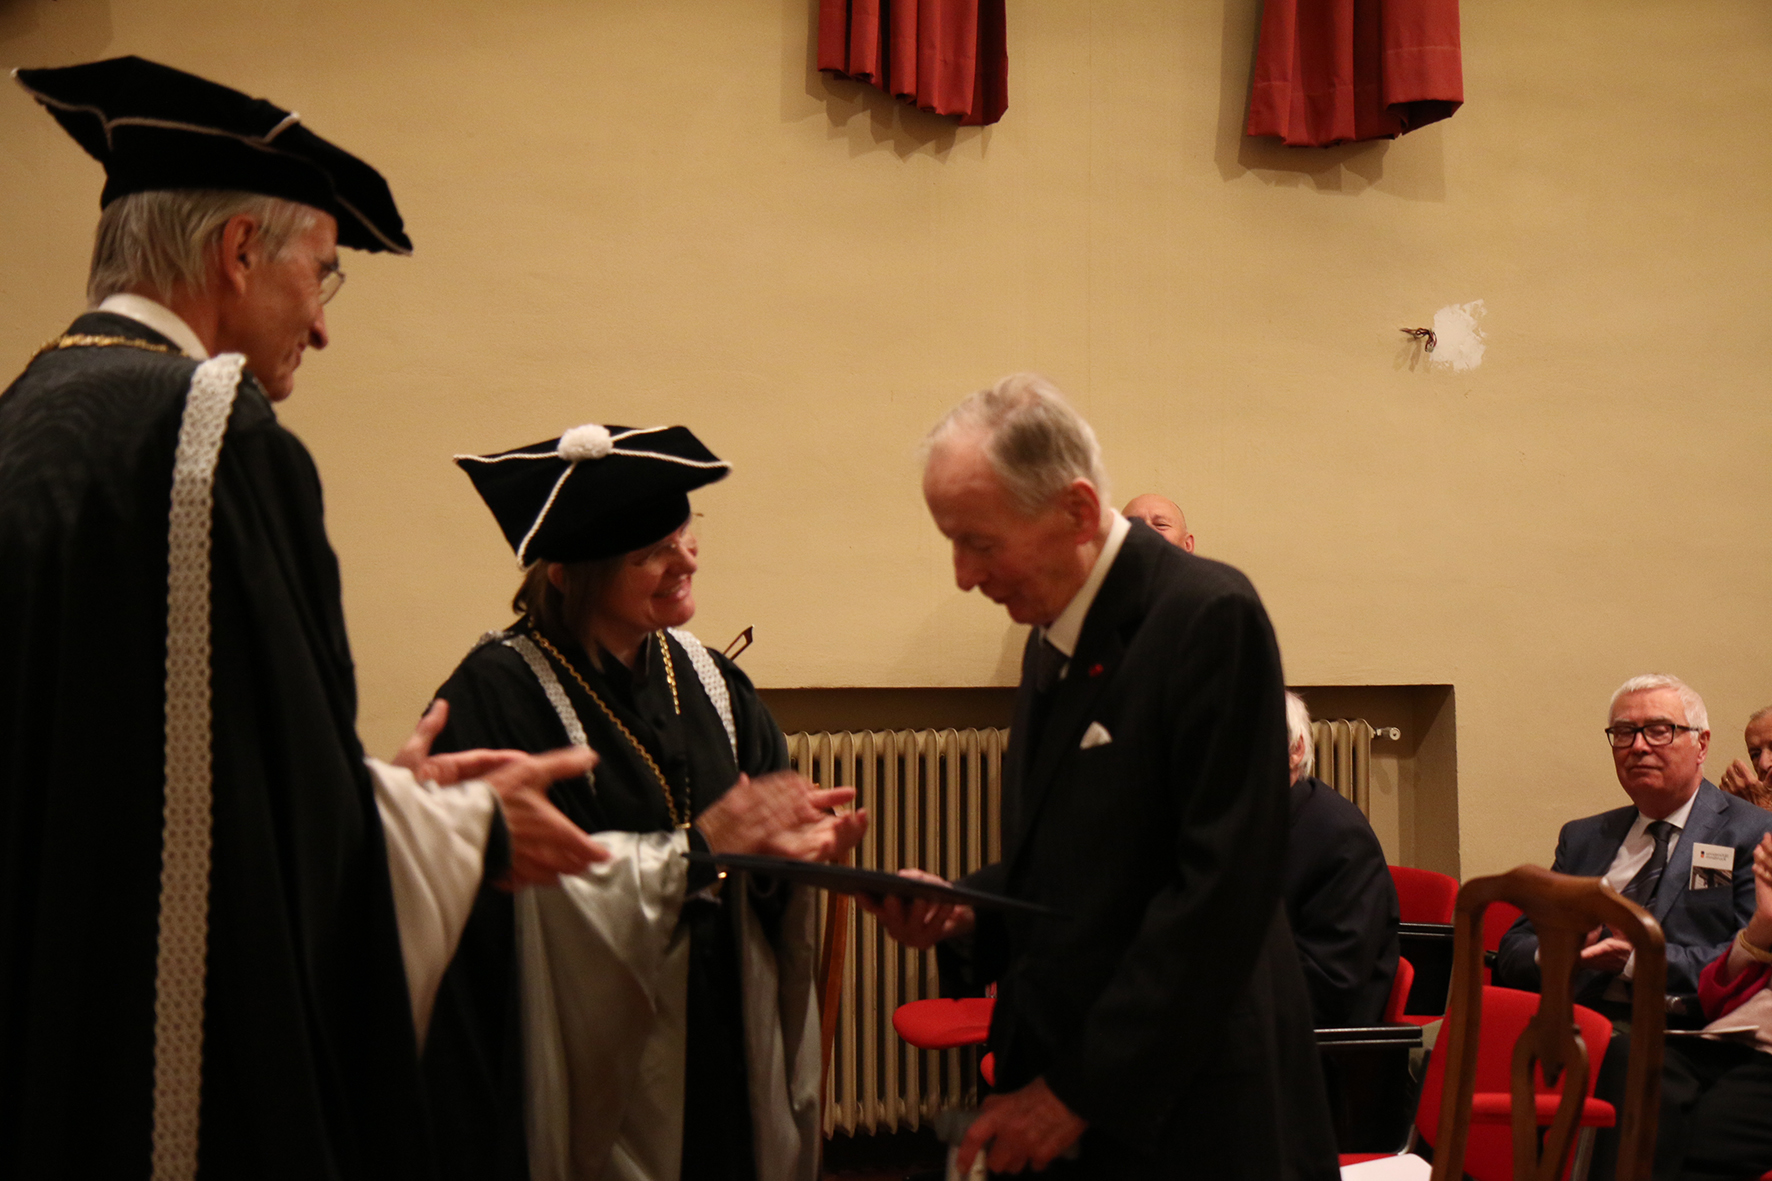 Brian McGuinness, Honorary degree